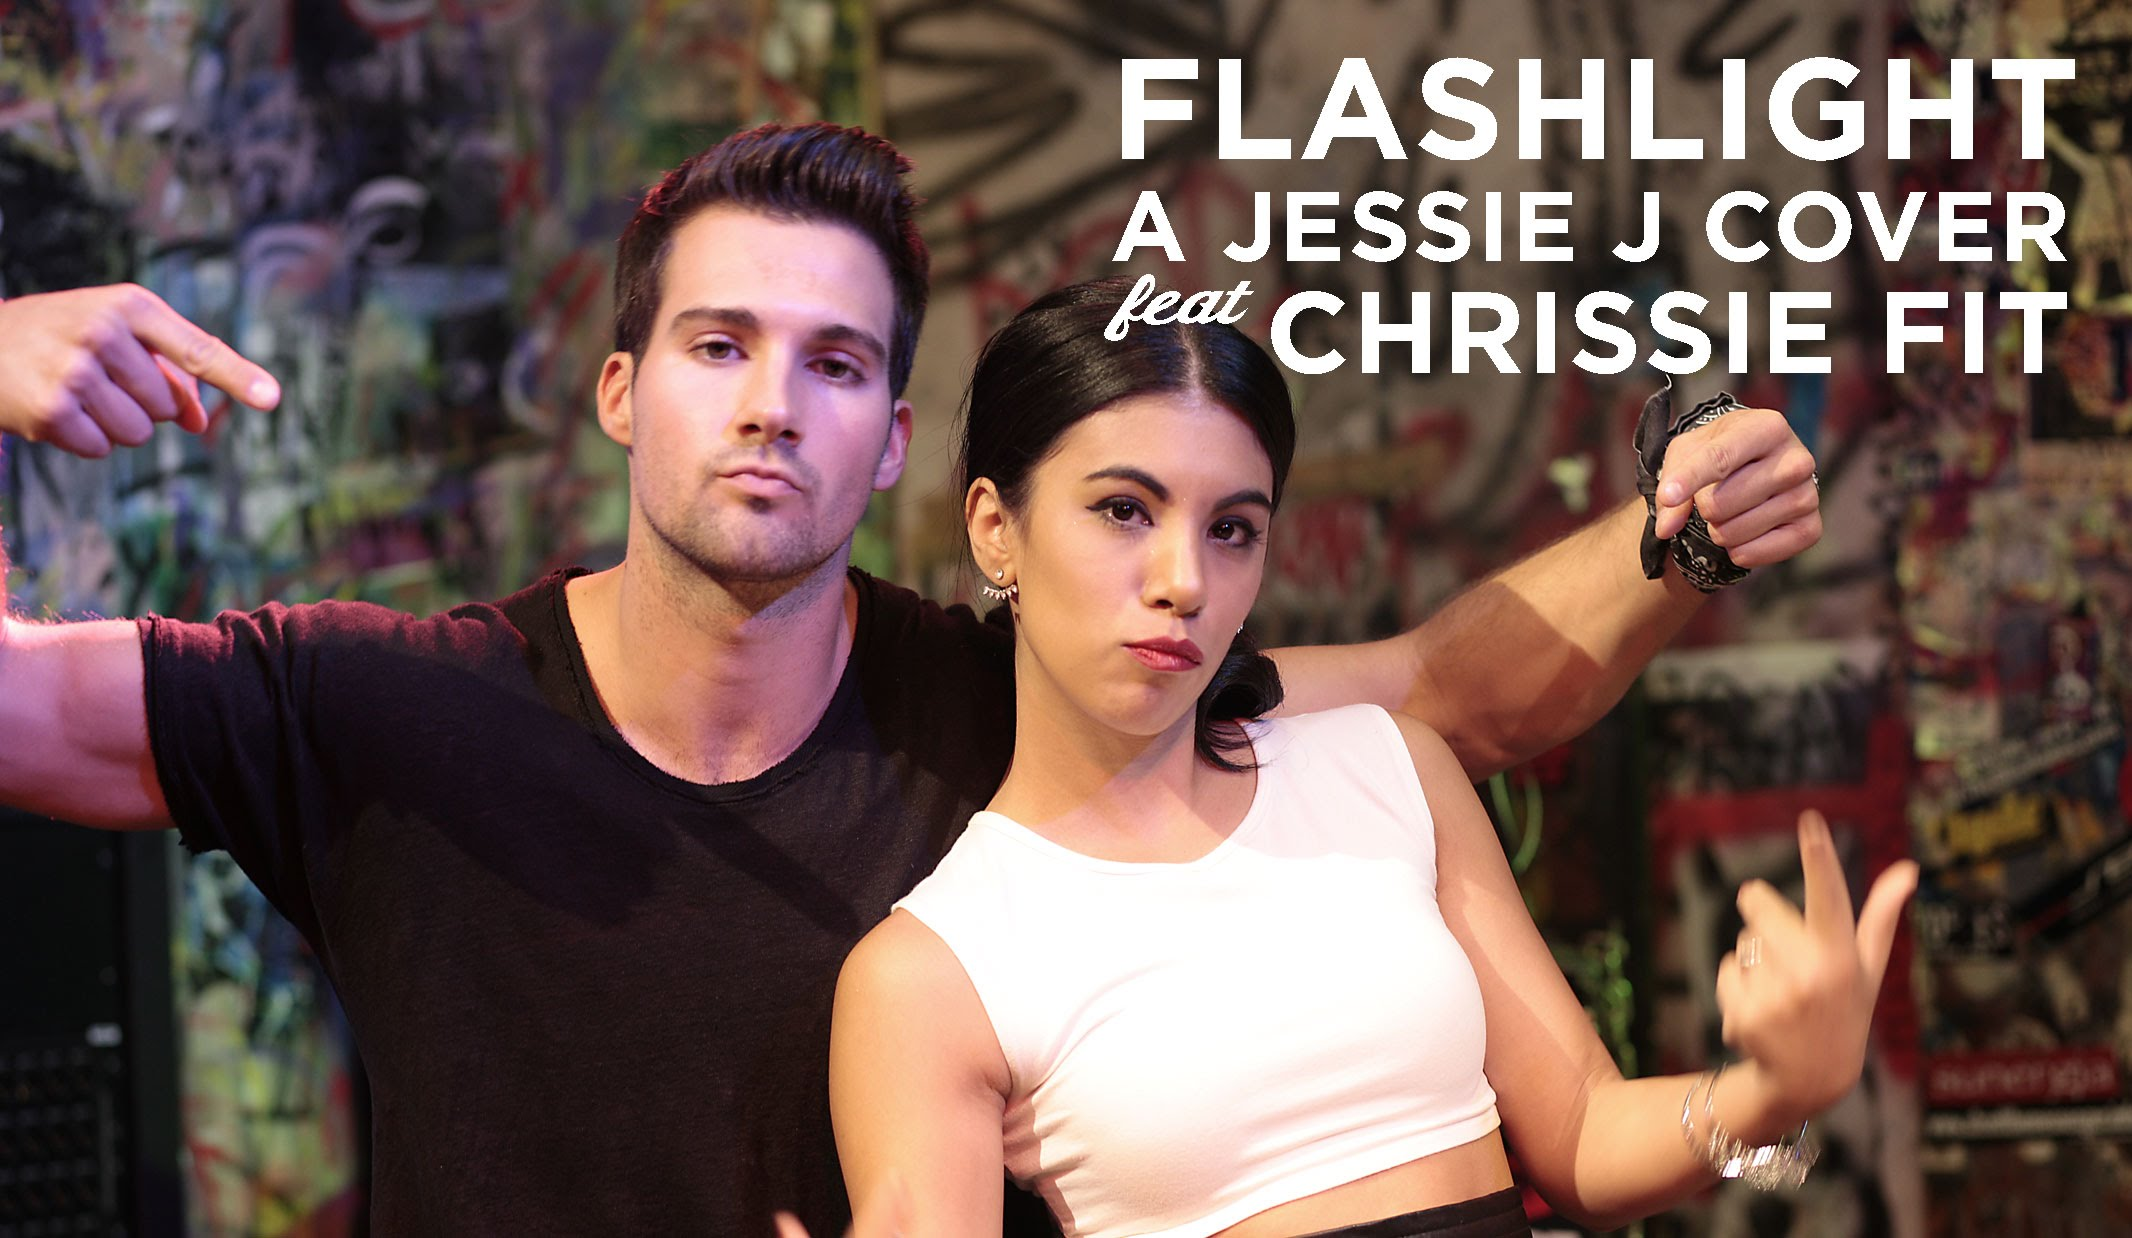 Jessie J - Flashlight (from Pitch Perfect 2) - A Cover by